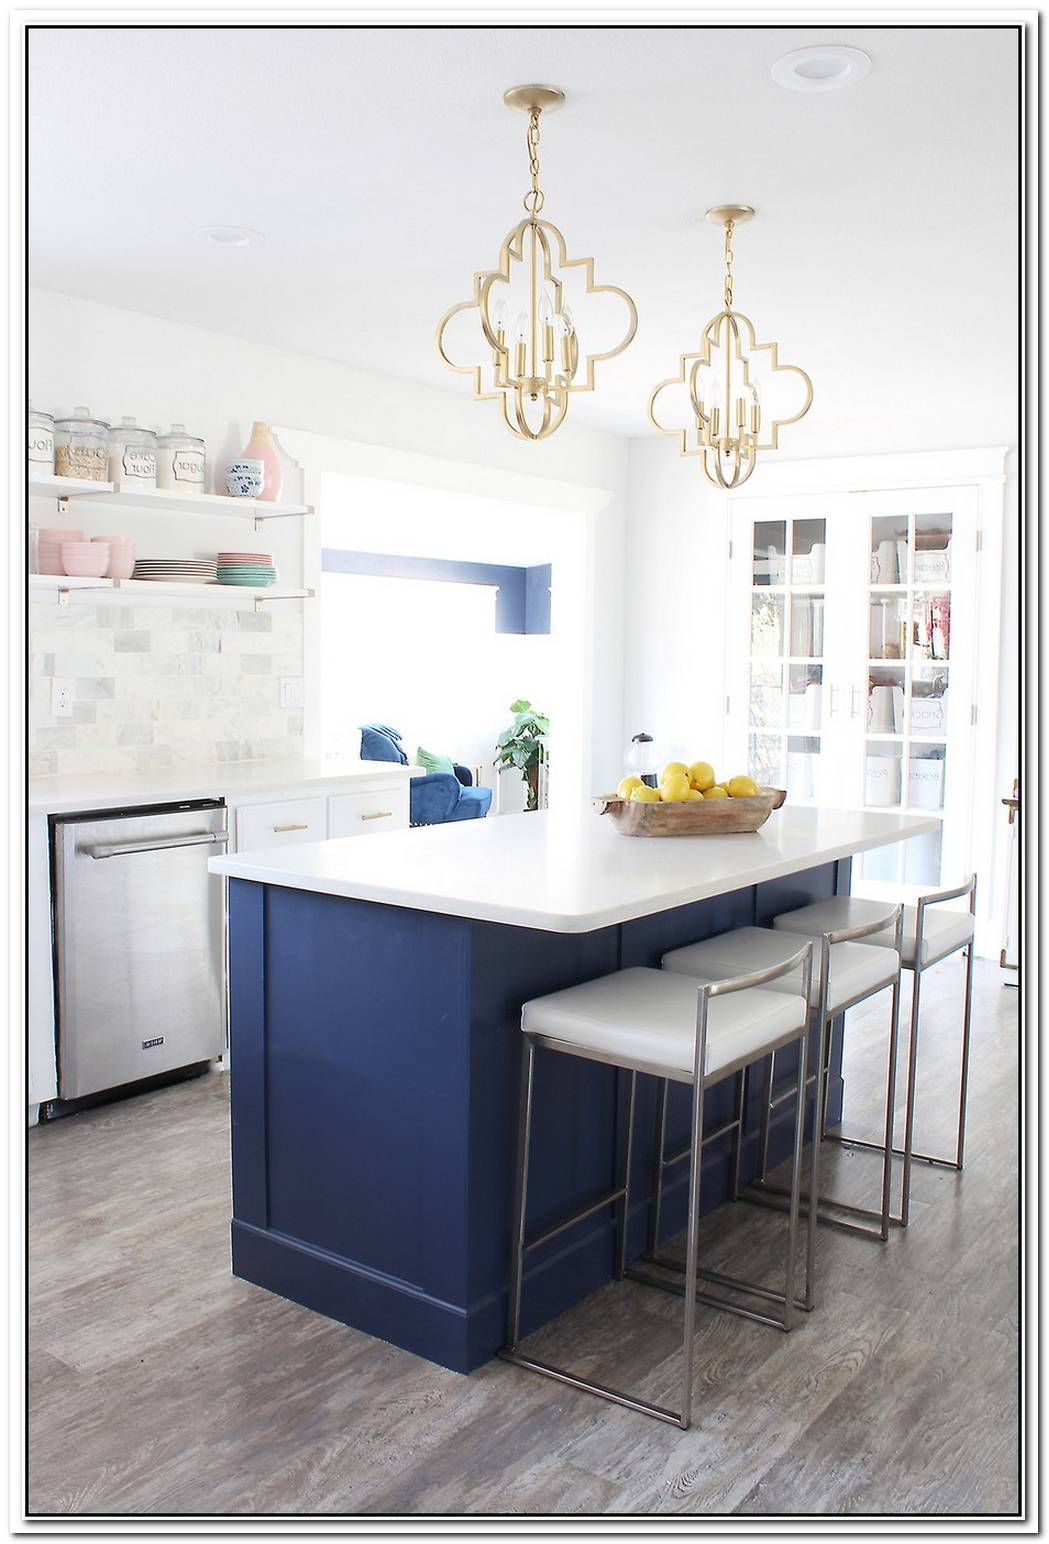 The Elegant Terra Kitchen Island